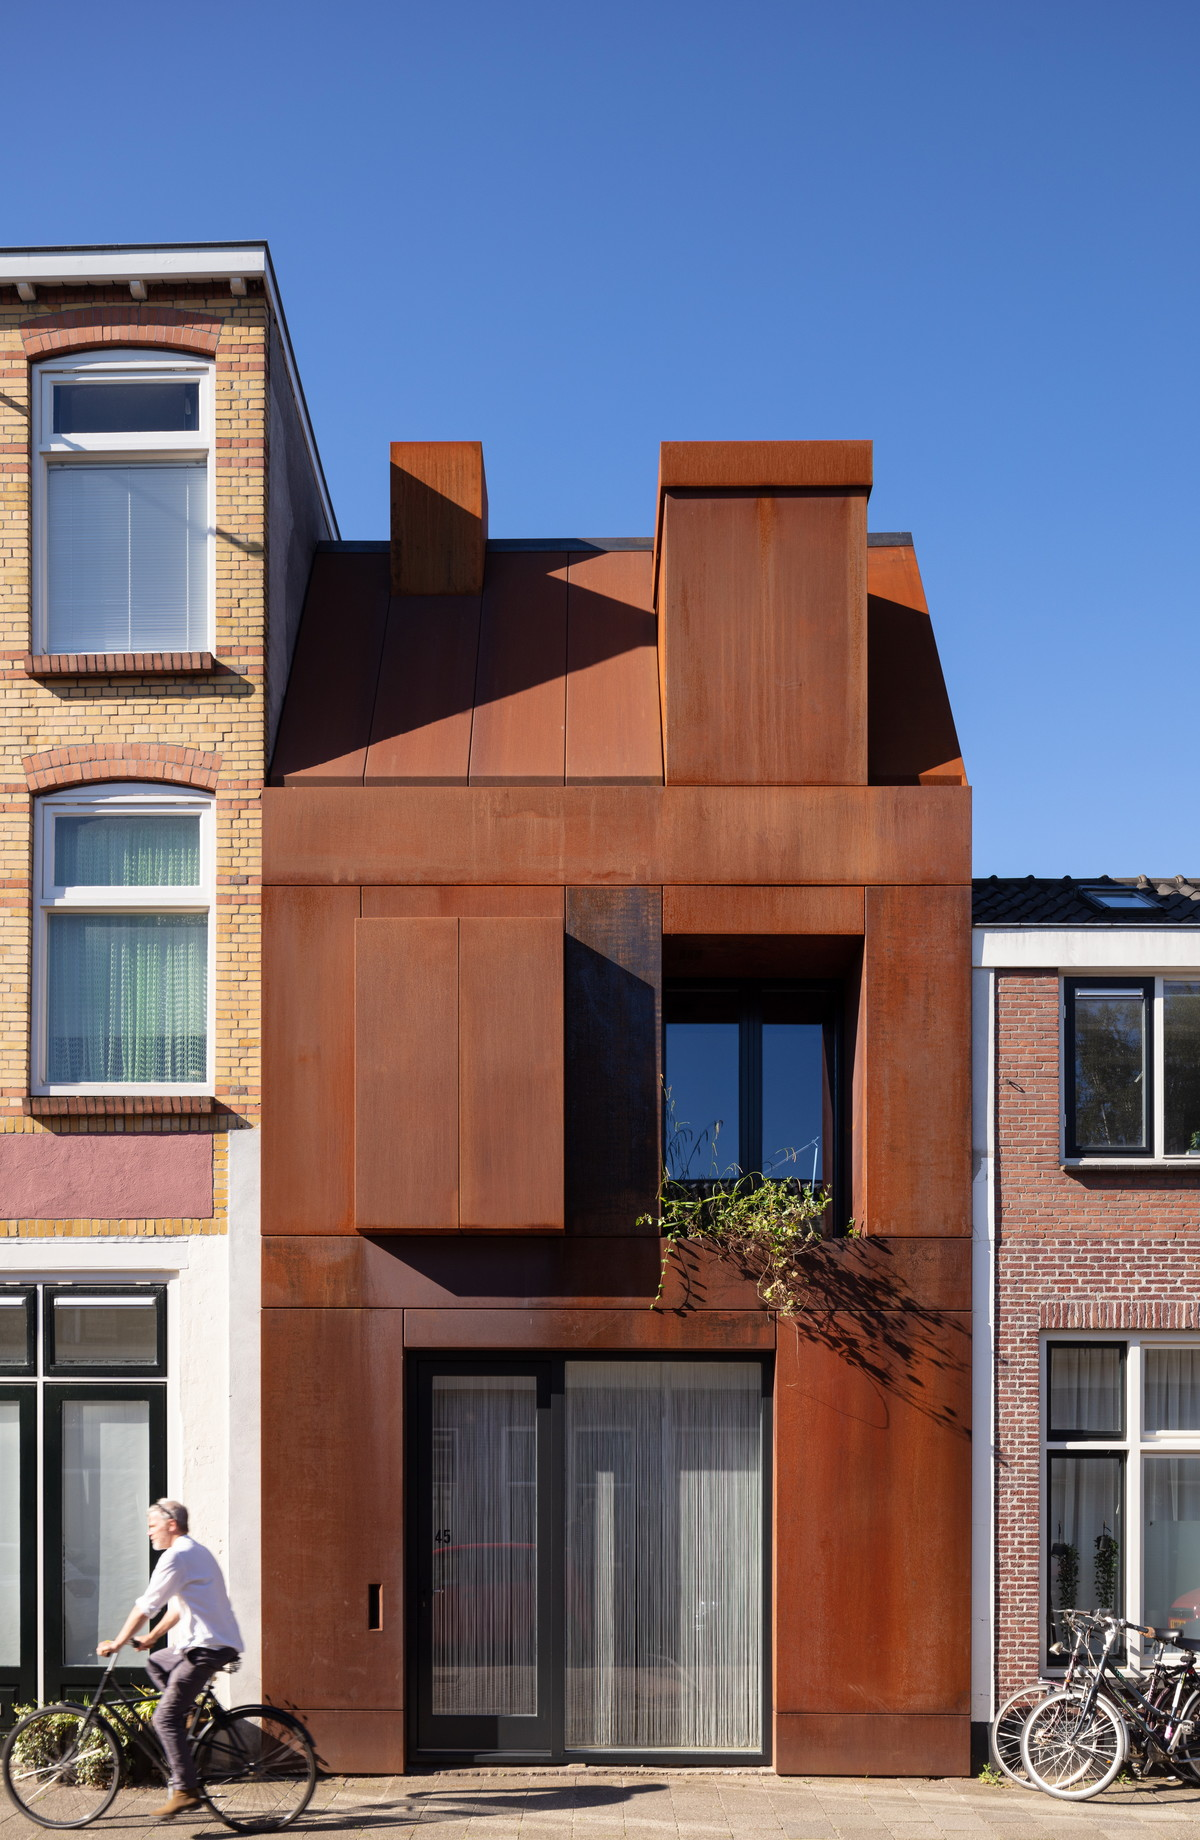 01-Zecc_Architecten-Utrecht-house-steel-craft.JPG